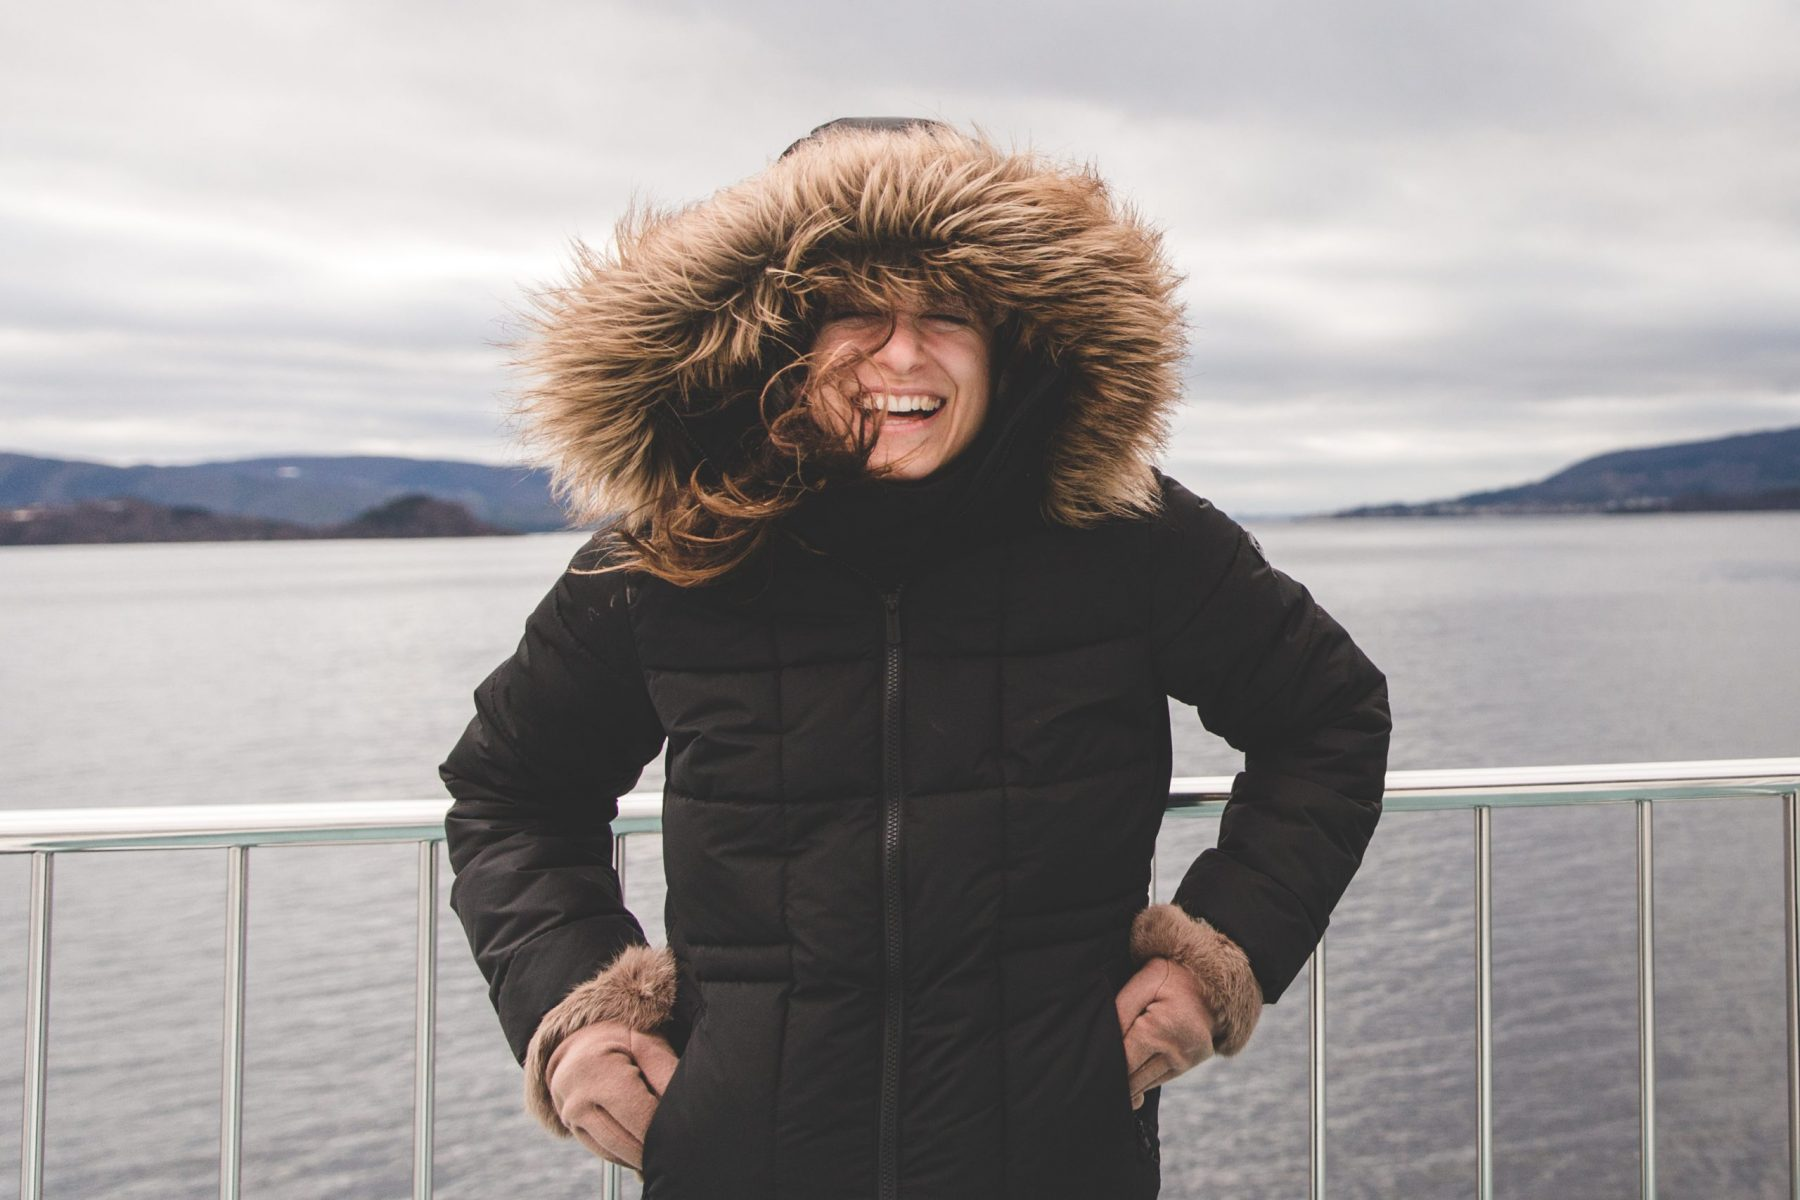 Kelsey is wearing a winter coat with a fur hood and tan gloves while smiling wide during the Rødne Fjord Cruise on the Osterfjord from Bergen, Norway in the winter